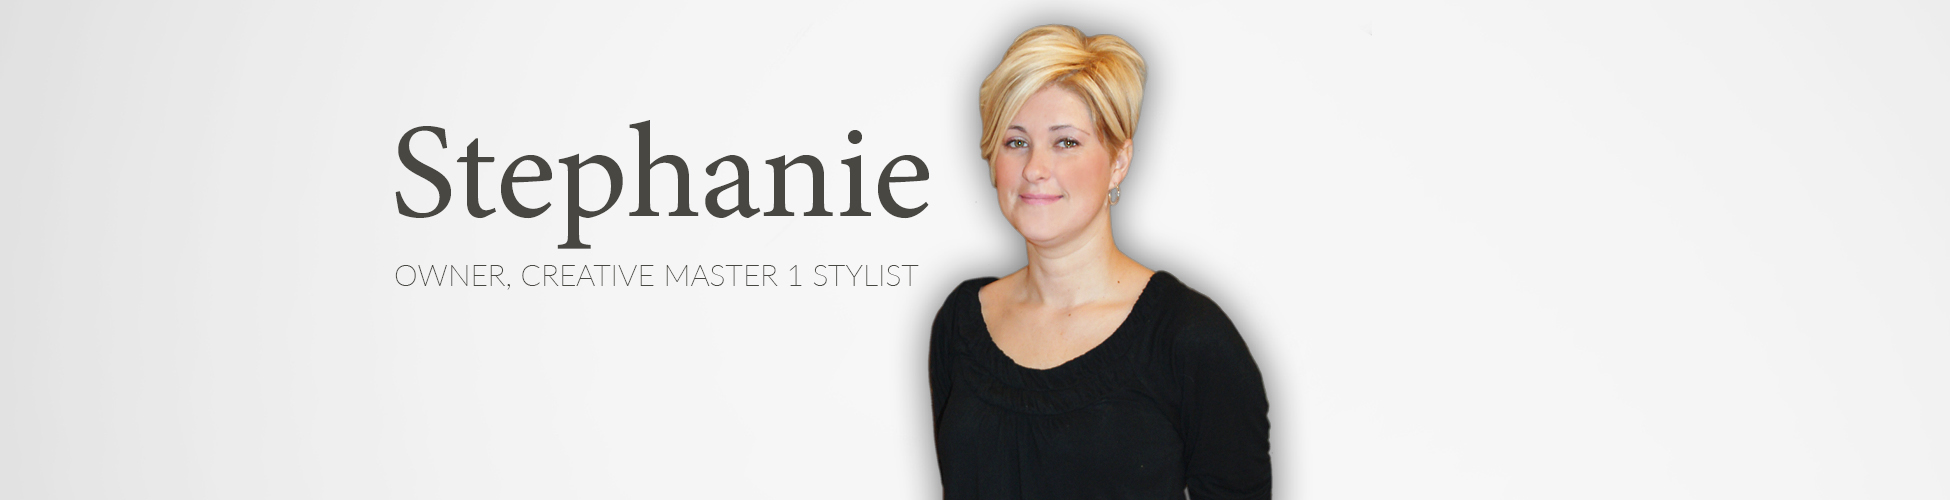 Stephanie Avalanche Salon & Spa